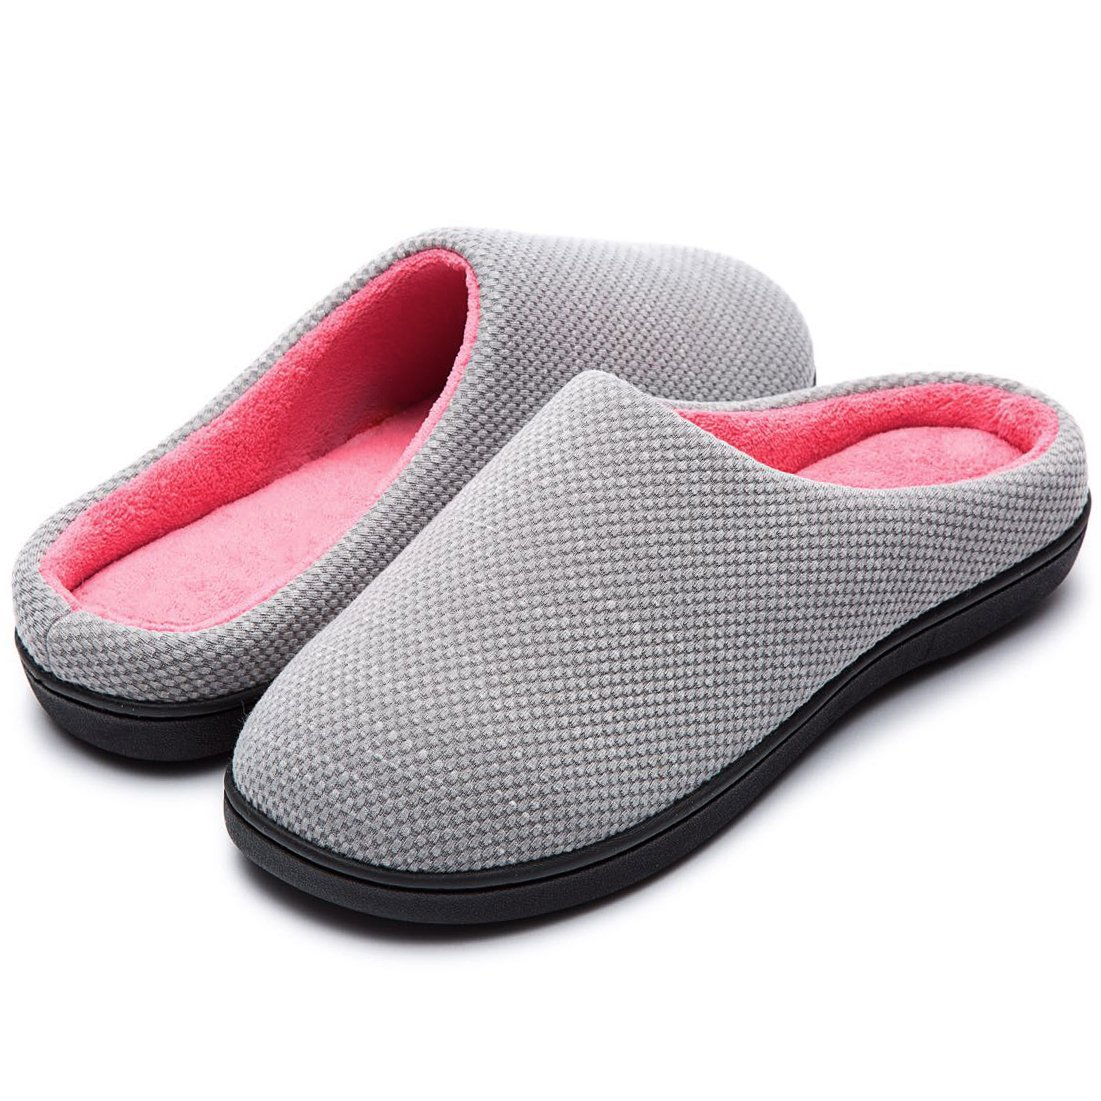 RockDove Women's Two-Tone Memory Foam Slipper (7-8 B(M) US, Gray/Pink)